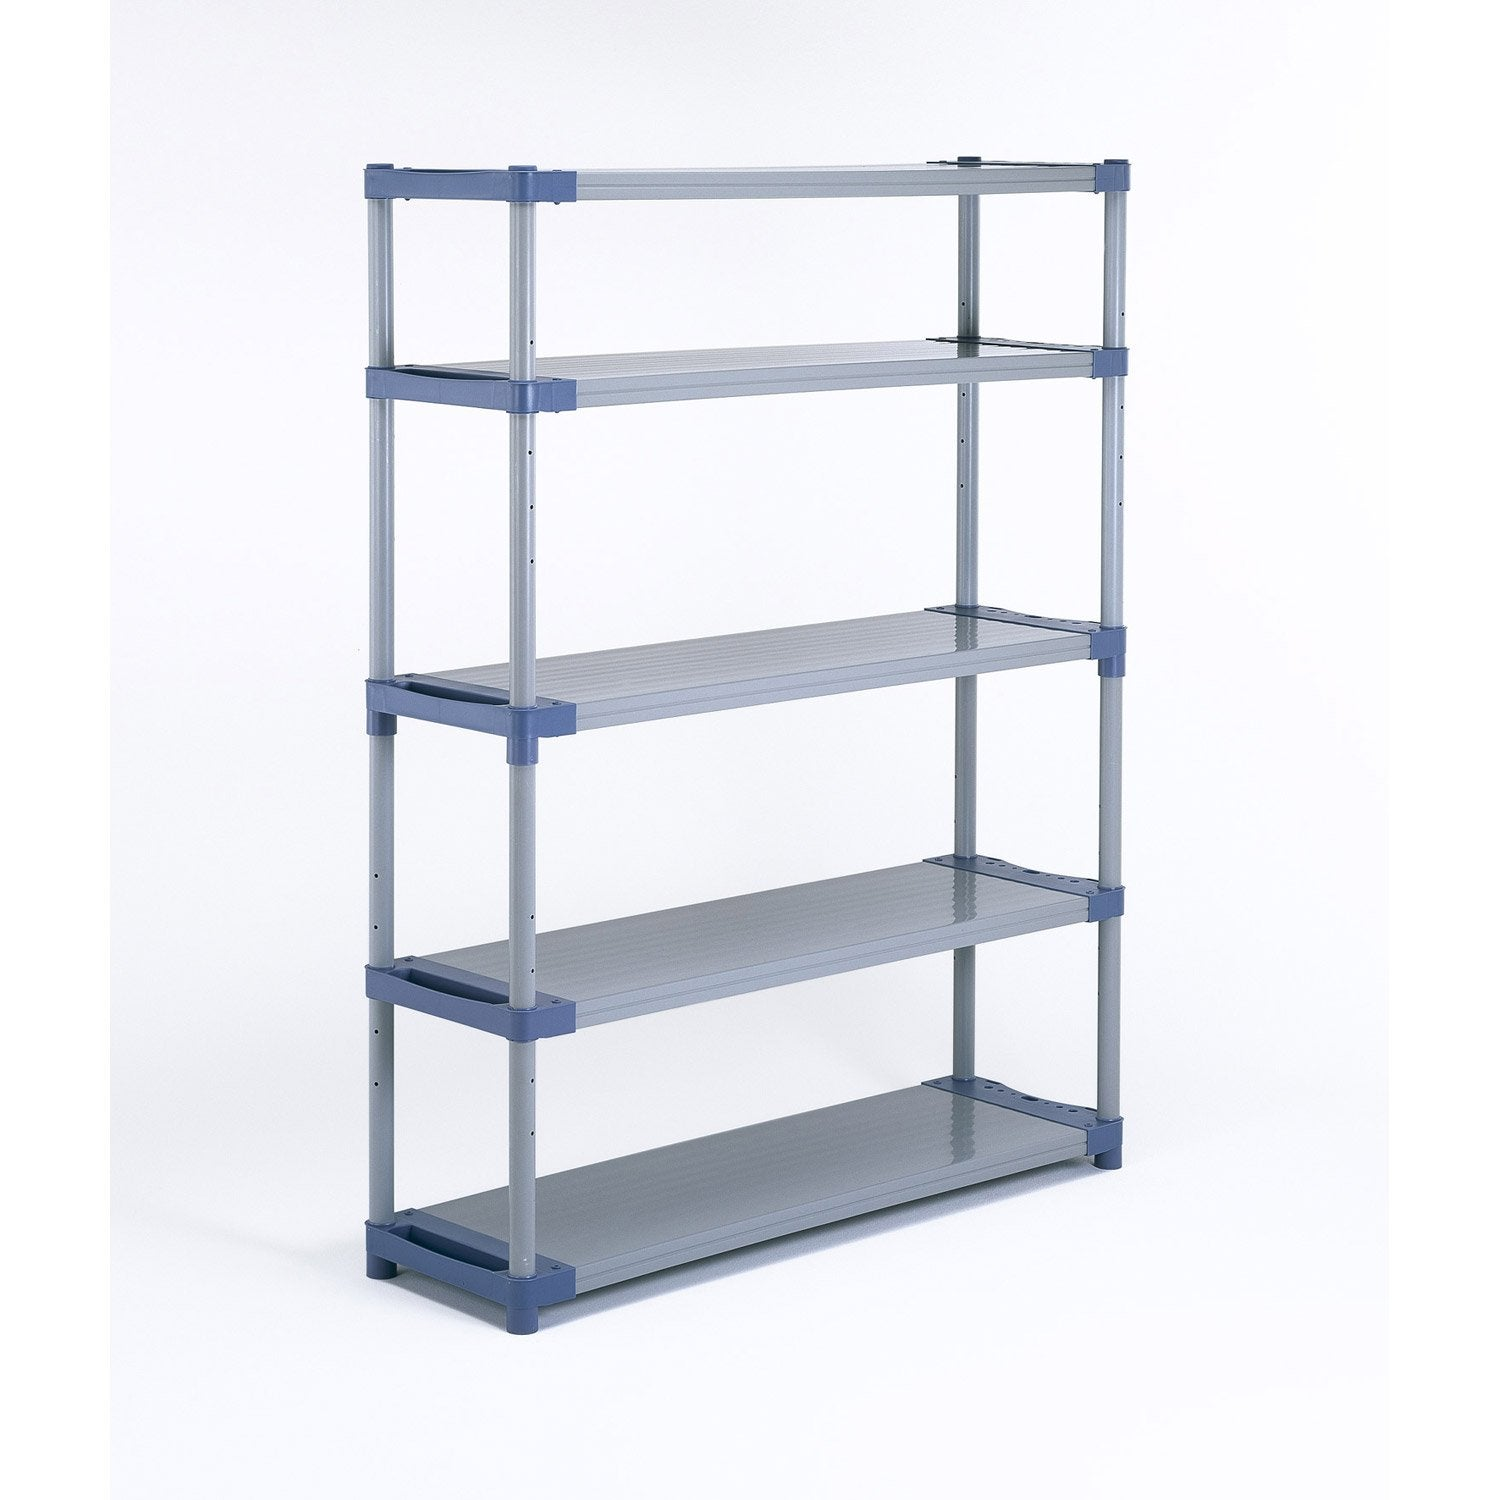 Etag re r sine grosfillex 5 tablettes gris bleu - Etagere metallique modulable ...